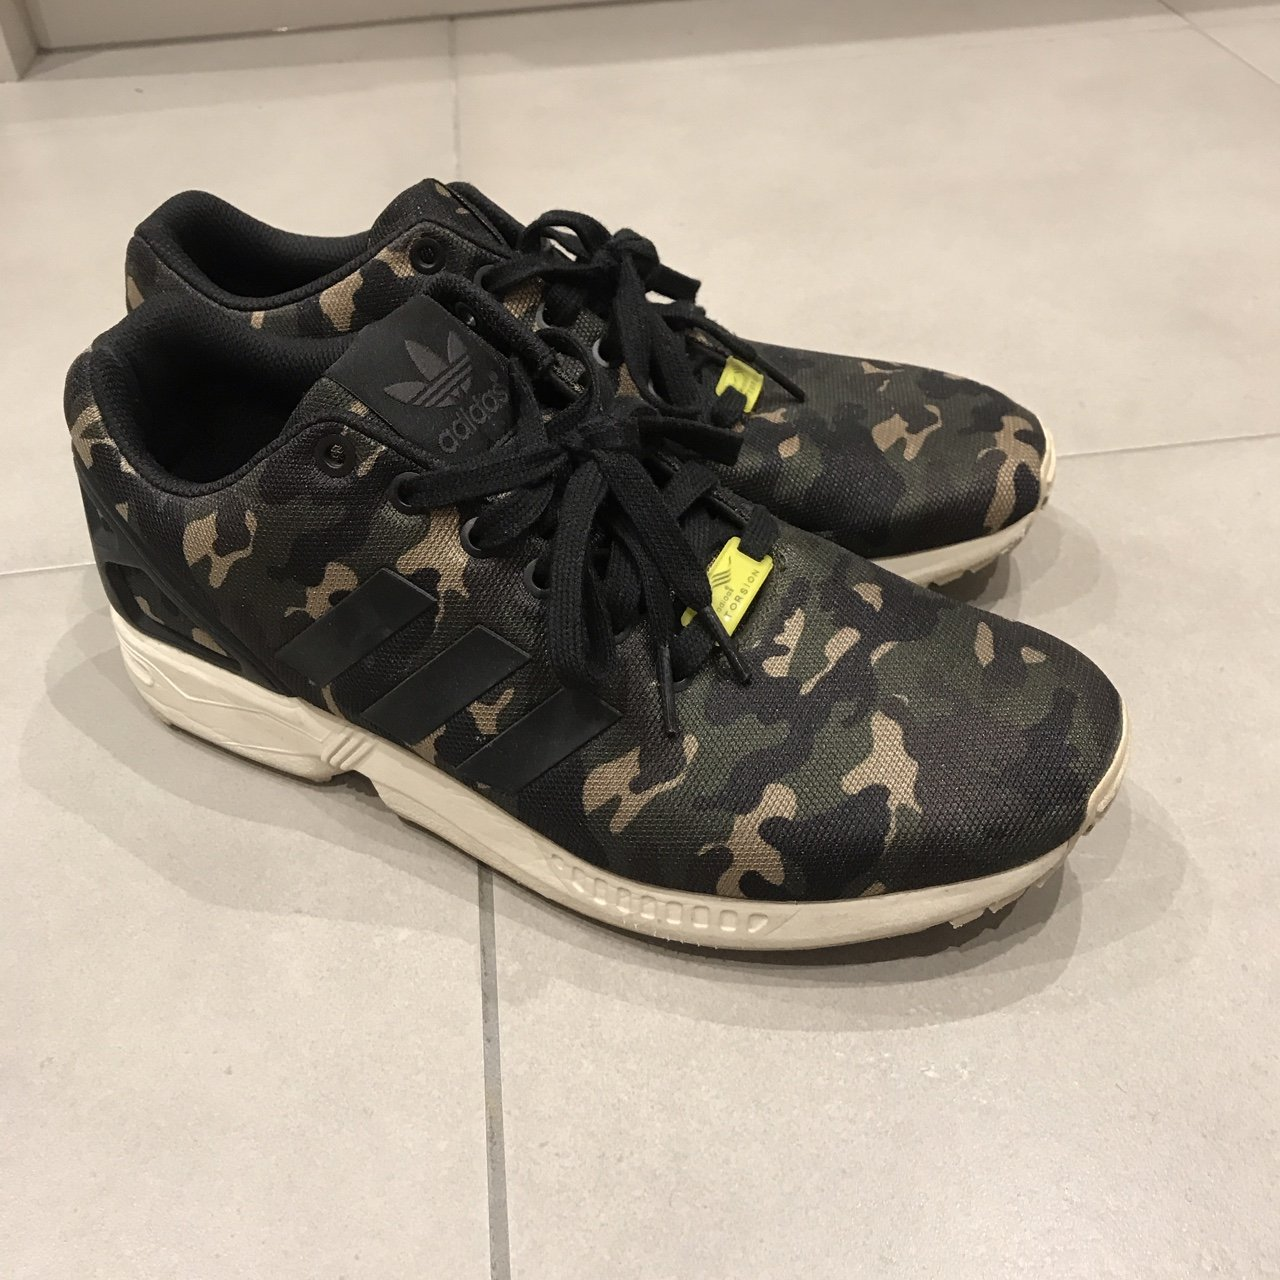 924b486eb460b @jacksafc94. 2 months ago. Oxford, United Kingdom. Adidas ZX Flux Torsion  !! Camo pattern ...